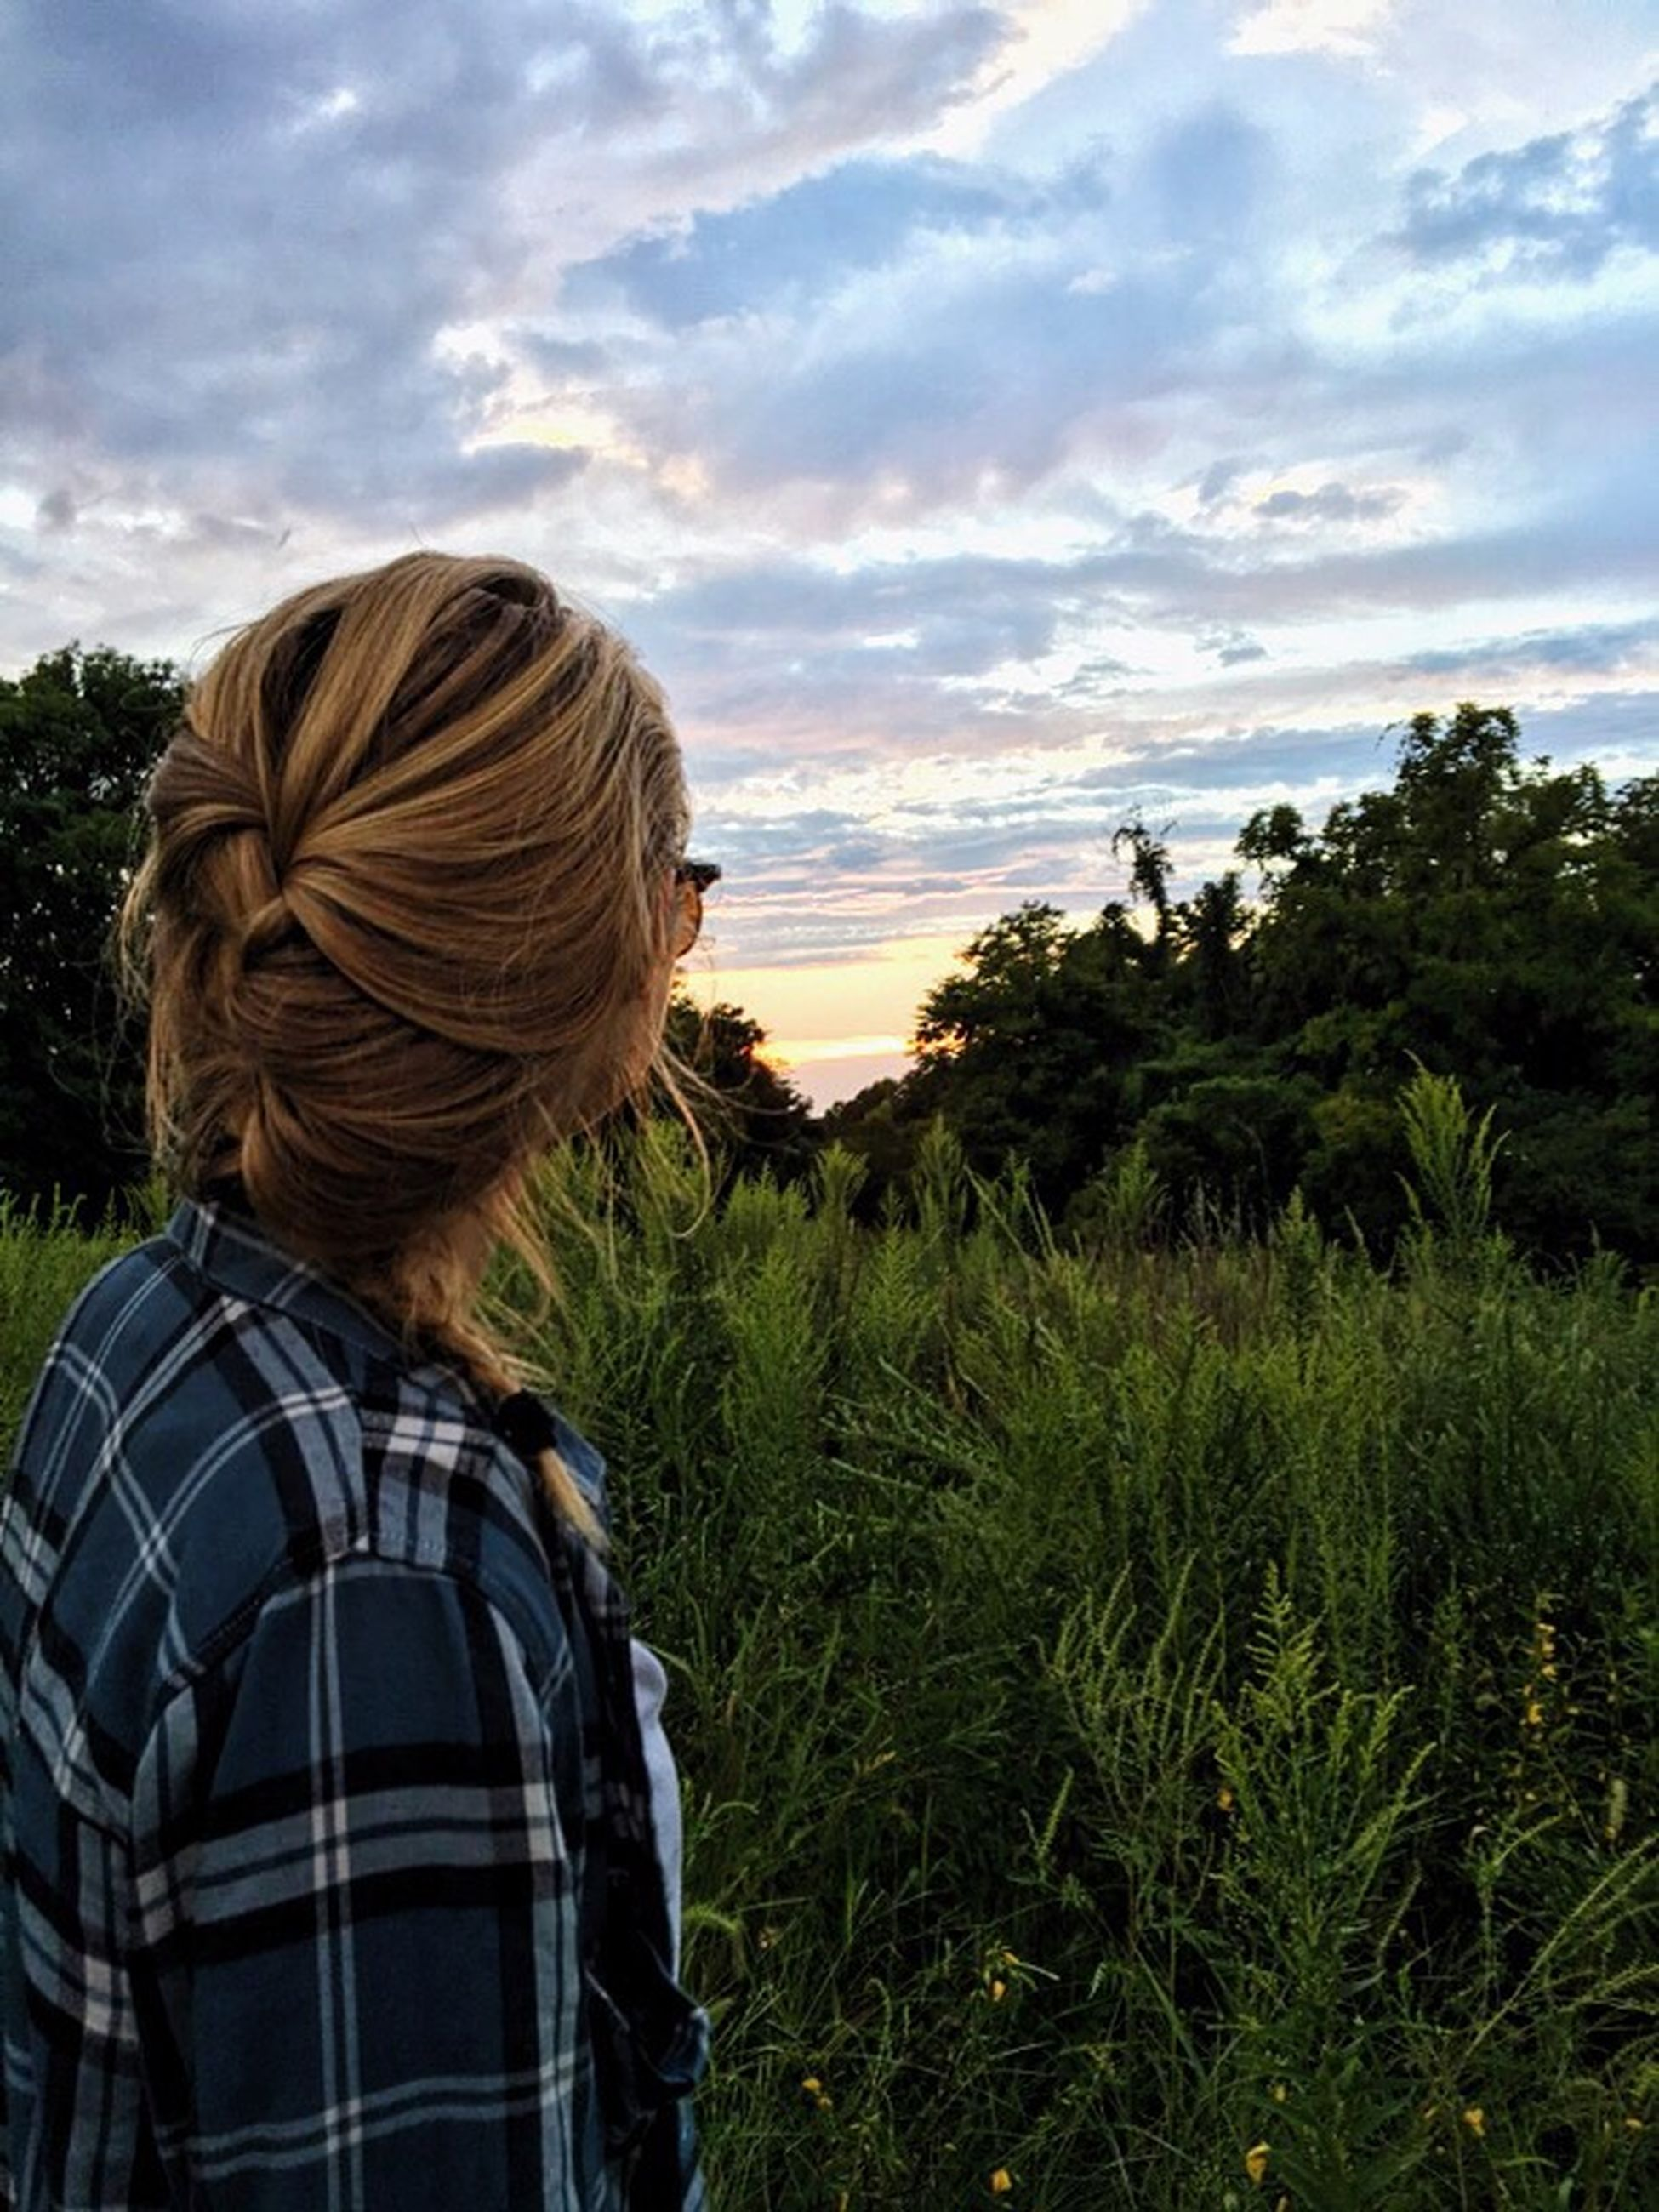 rear view, leisure activity, lifestyles, sky, person, tree, green color, cloud - sky, headshot, standing, casual clothing, beauty in nature, tourist, scenics, tranquility, vacations, tranquil scene, tourism, plant, nature, remote, growth, outdoors, mountain, human hair